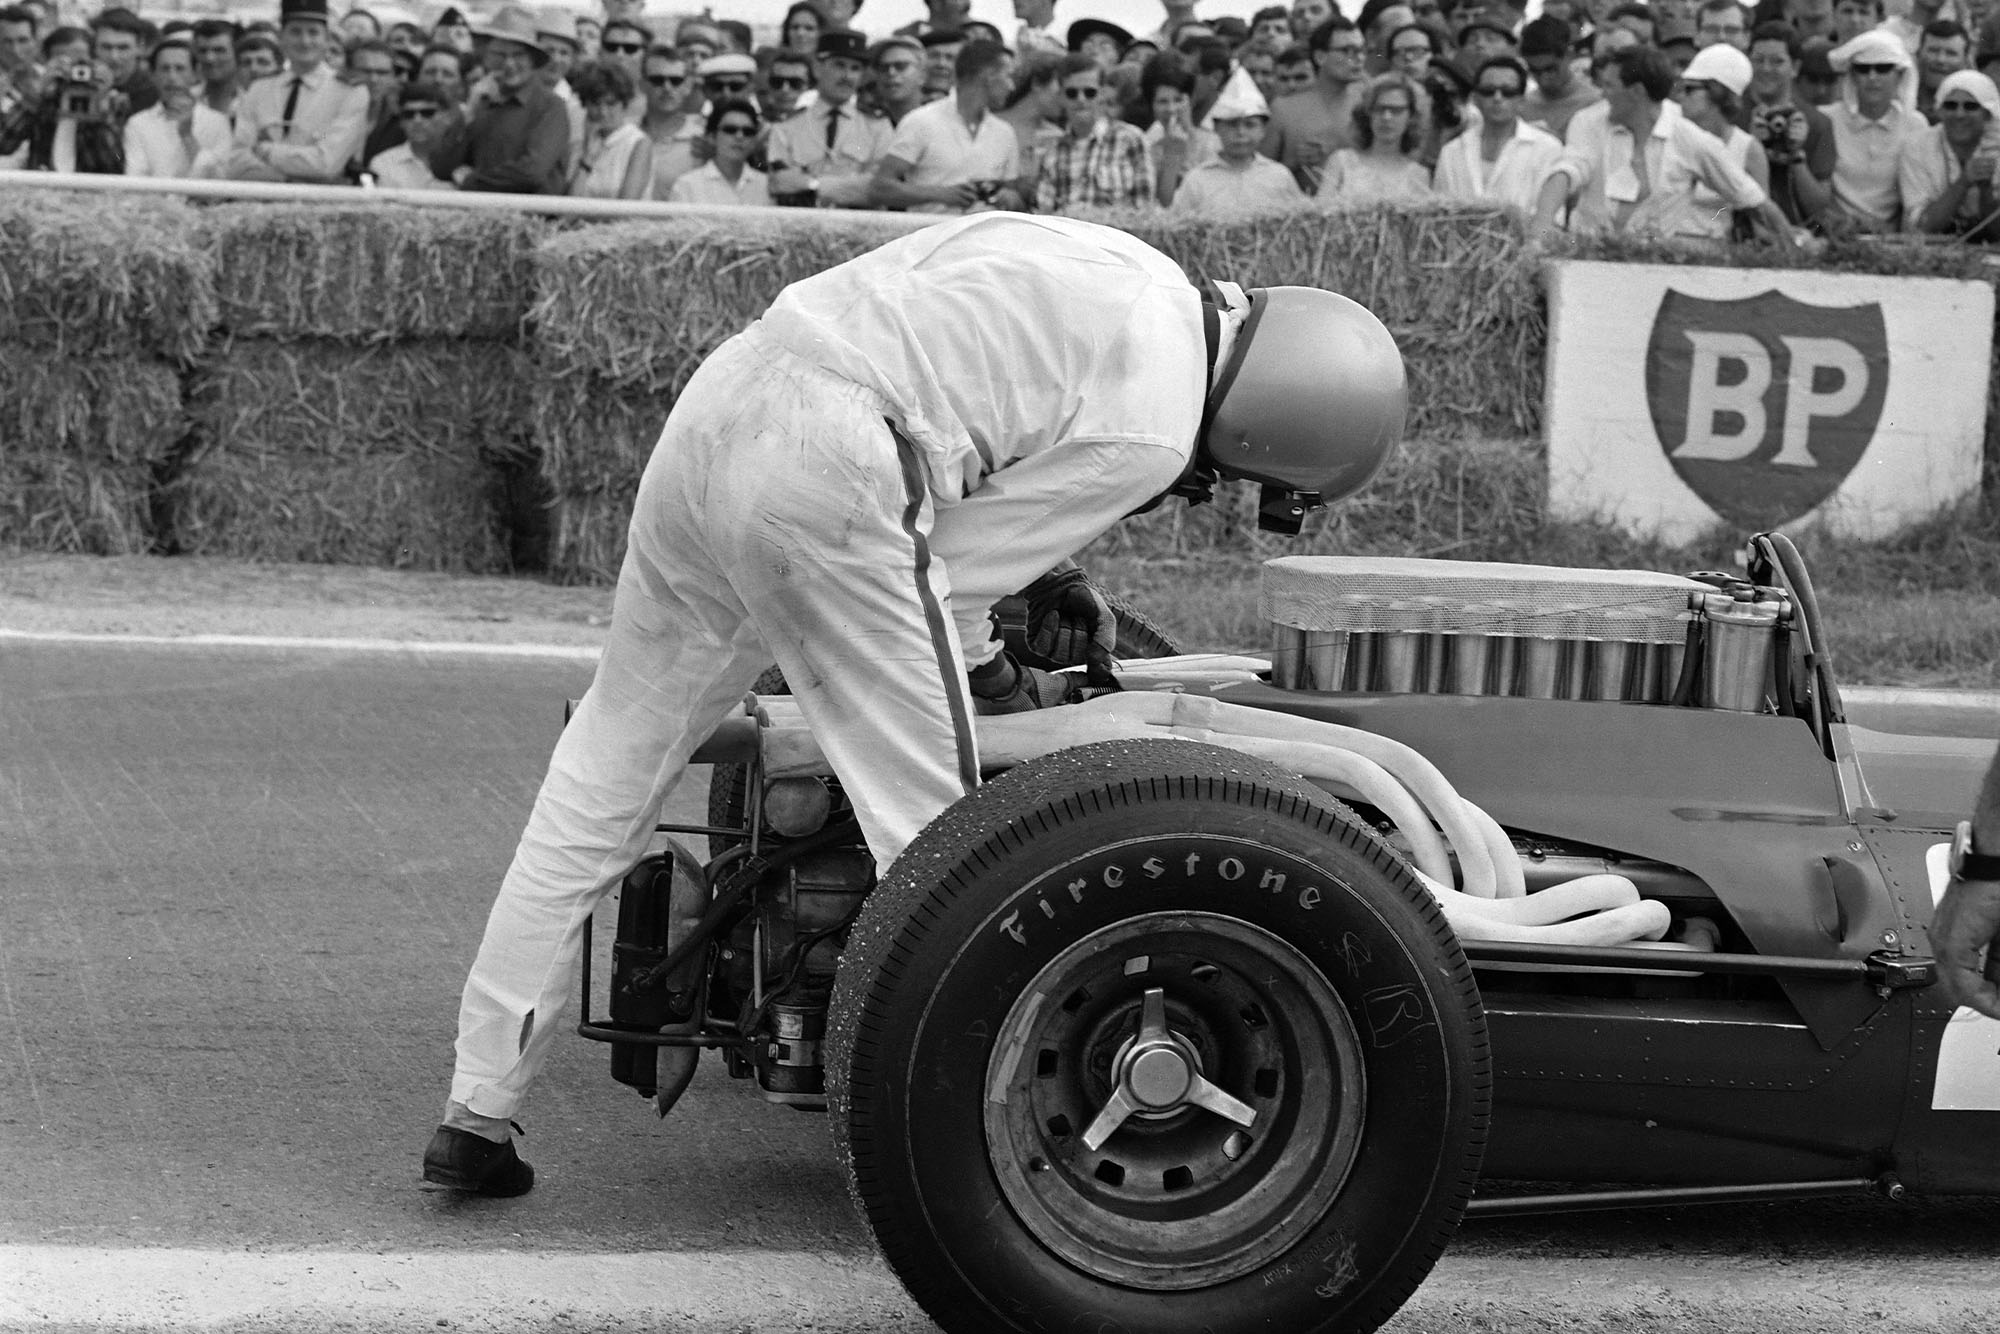 After suffering a throttle issue, Lorenzo Bandini utilises a piece of wire from a hay bale to attach to the engine and get him back to the pit lane.